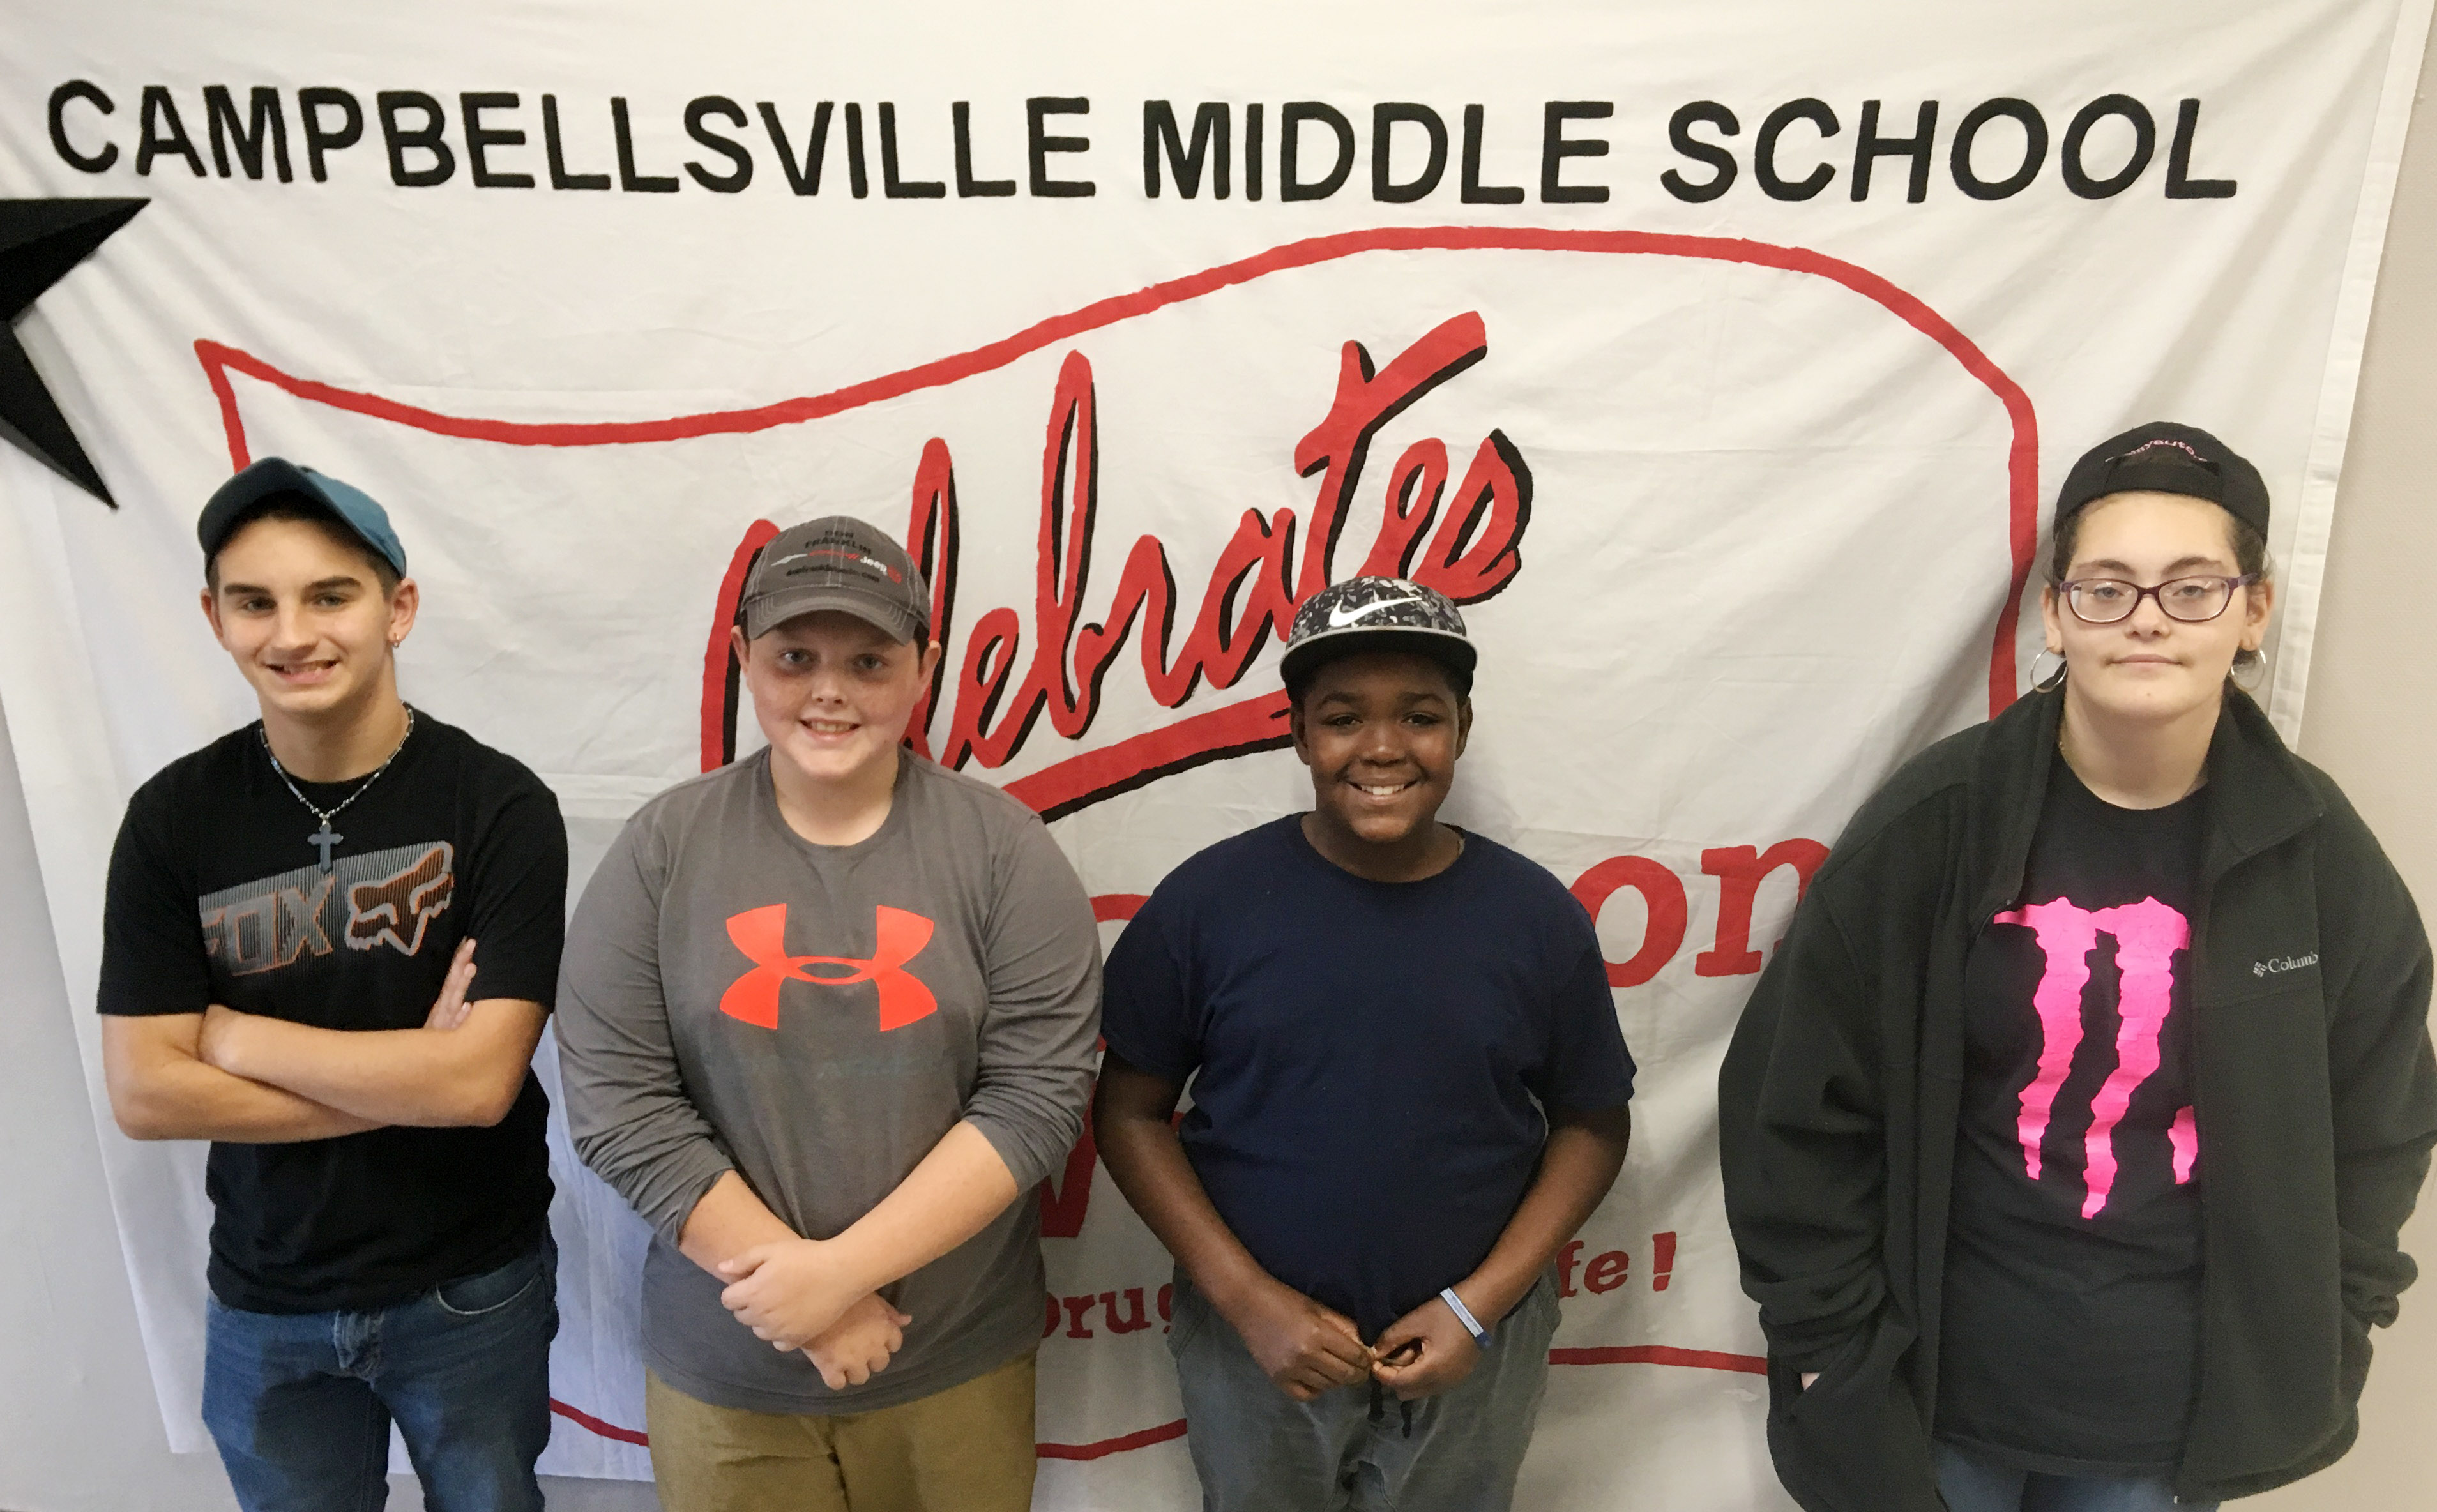 CMS Red Ribbon Week dress-up day winners for Wednesday, Oct. 24, are, from left, seventh-grader Jordan Gabehart, eighth-grader Aiden Humphress, sixth-grader Deason Smith and eighth-grader Jasper Wright.